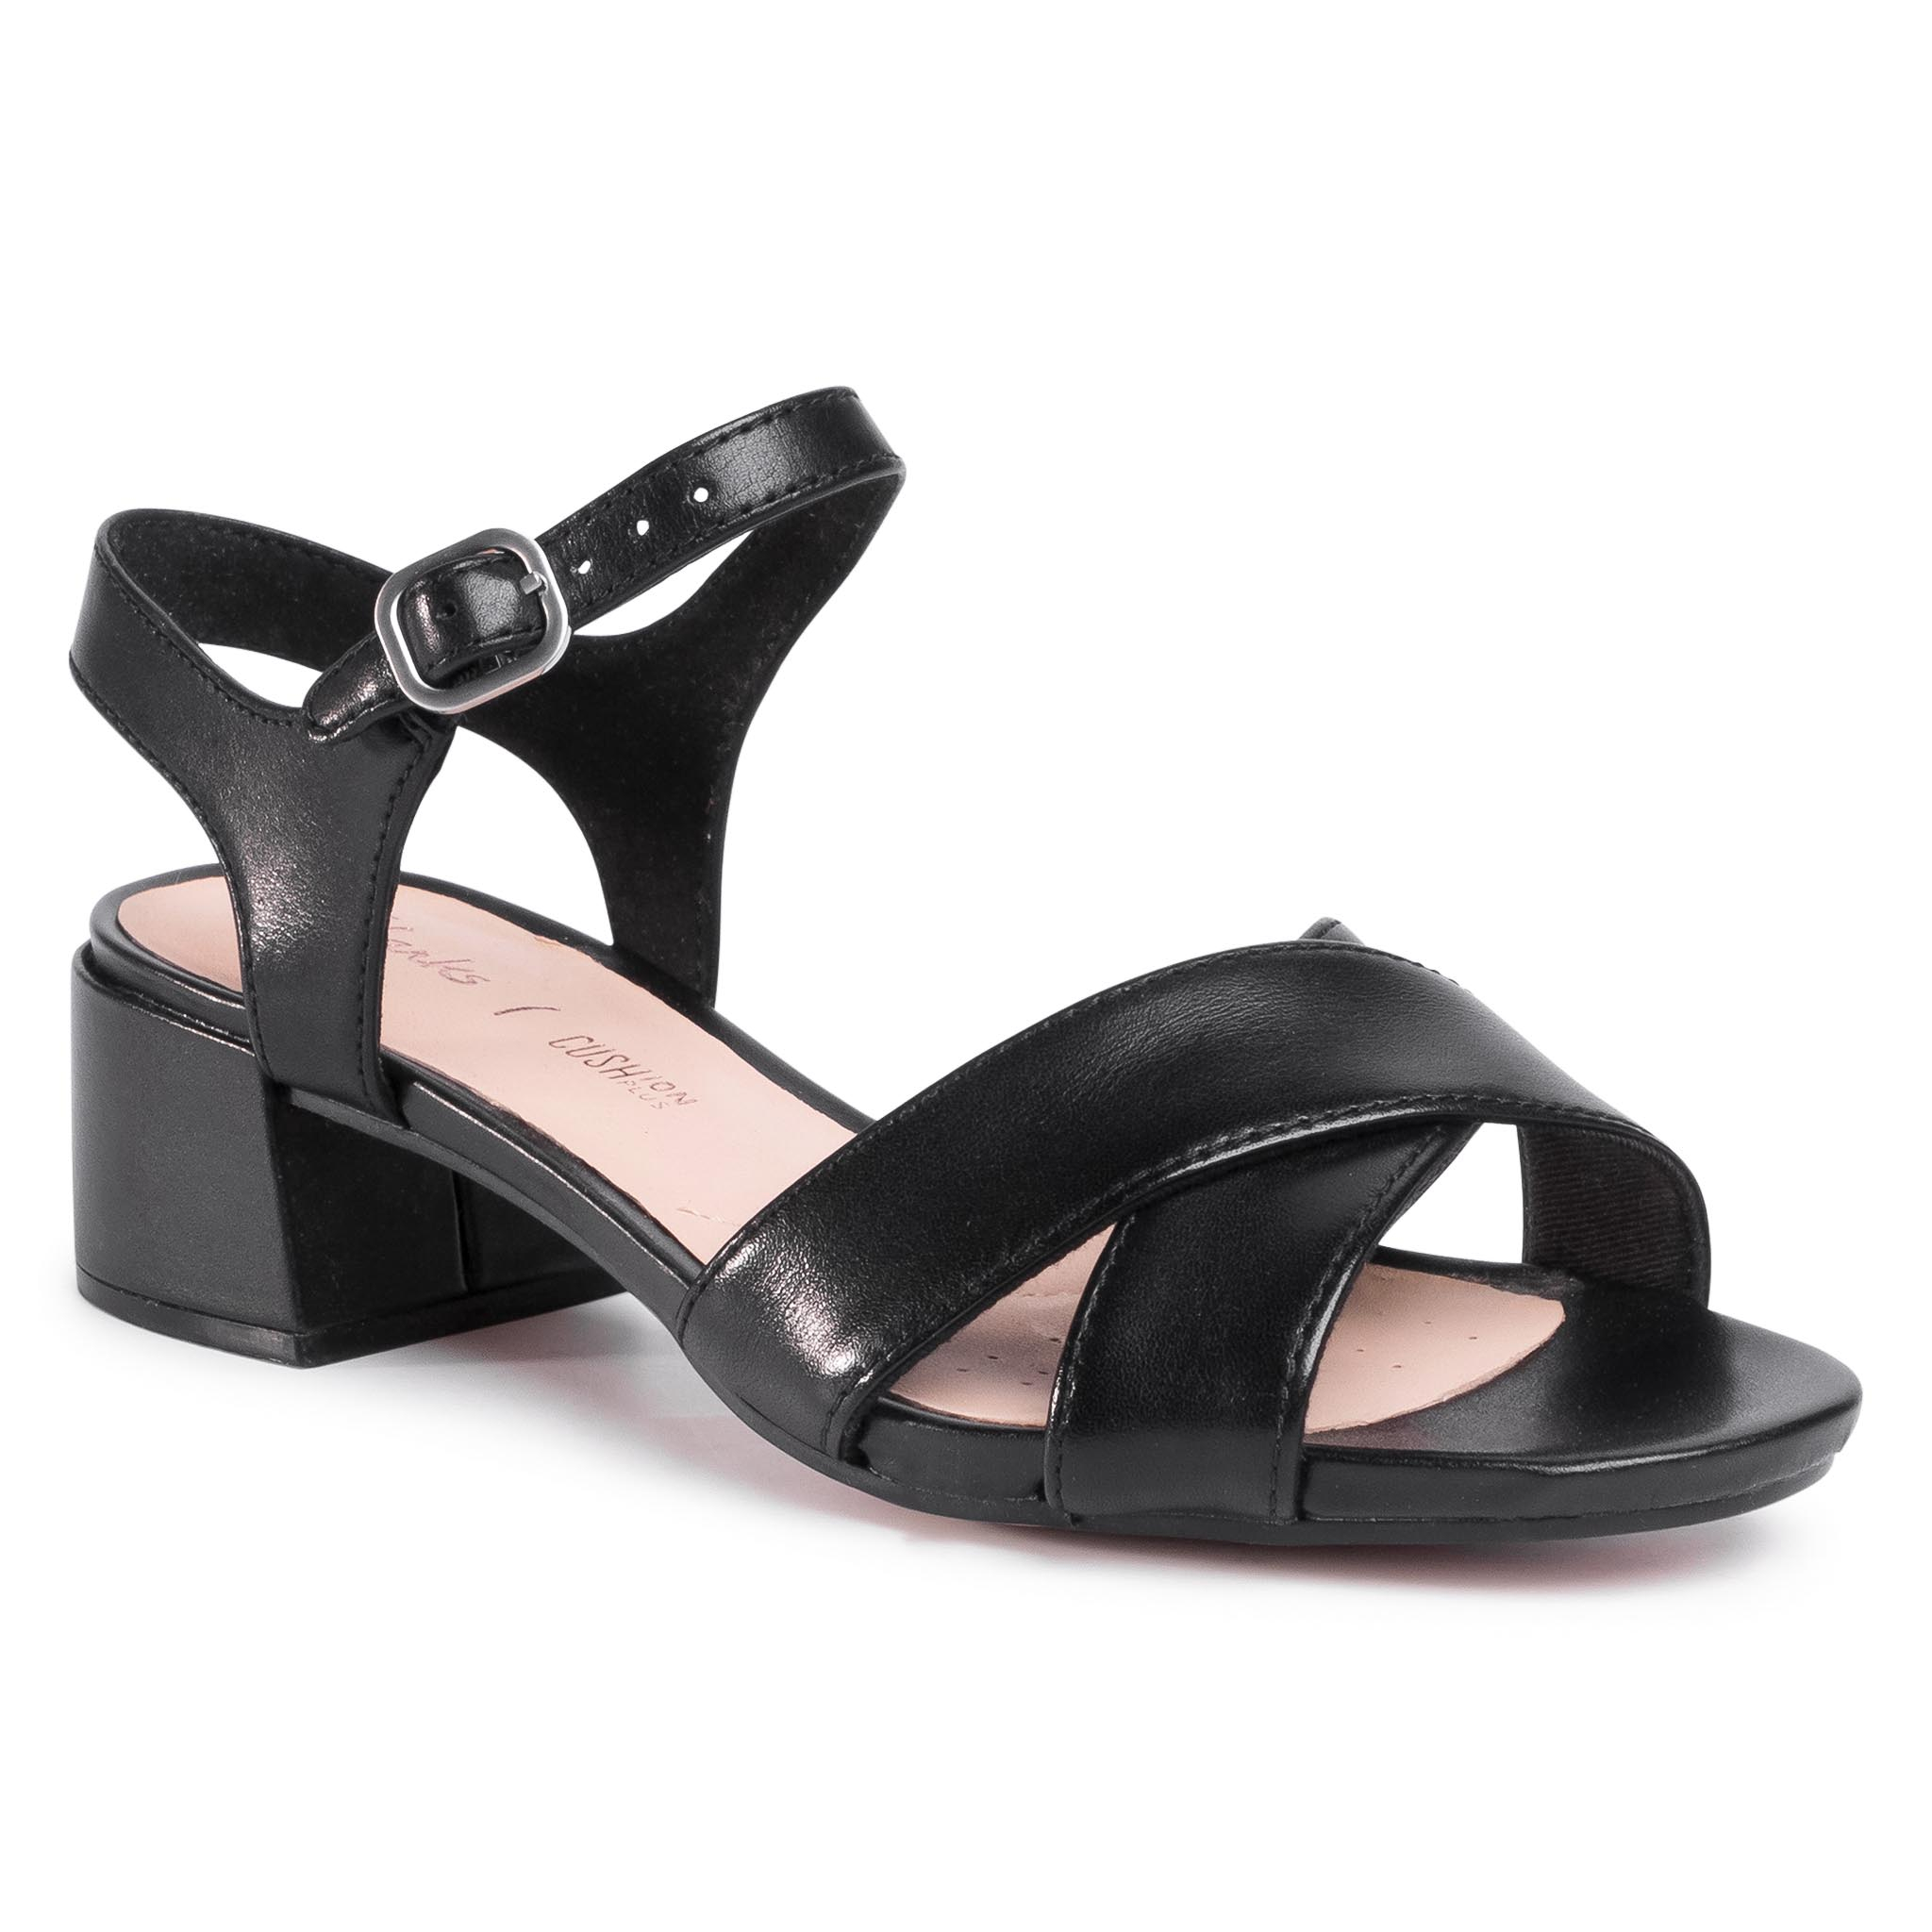 Sandale CLARKS - Sheer35 Strap 261484334 Black Leather